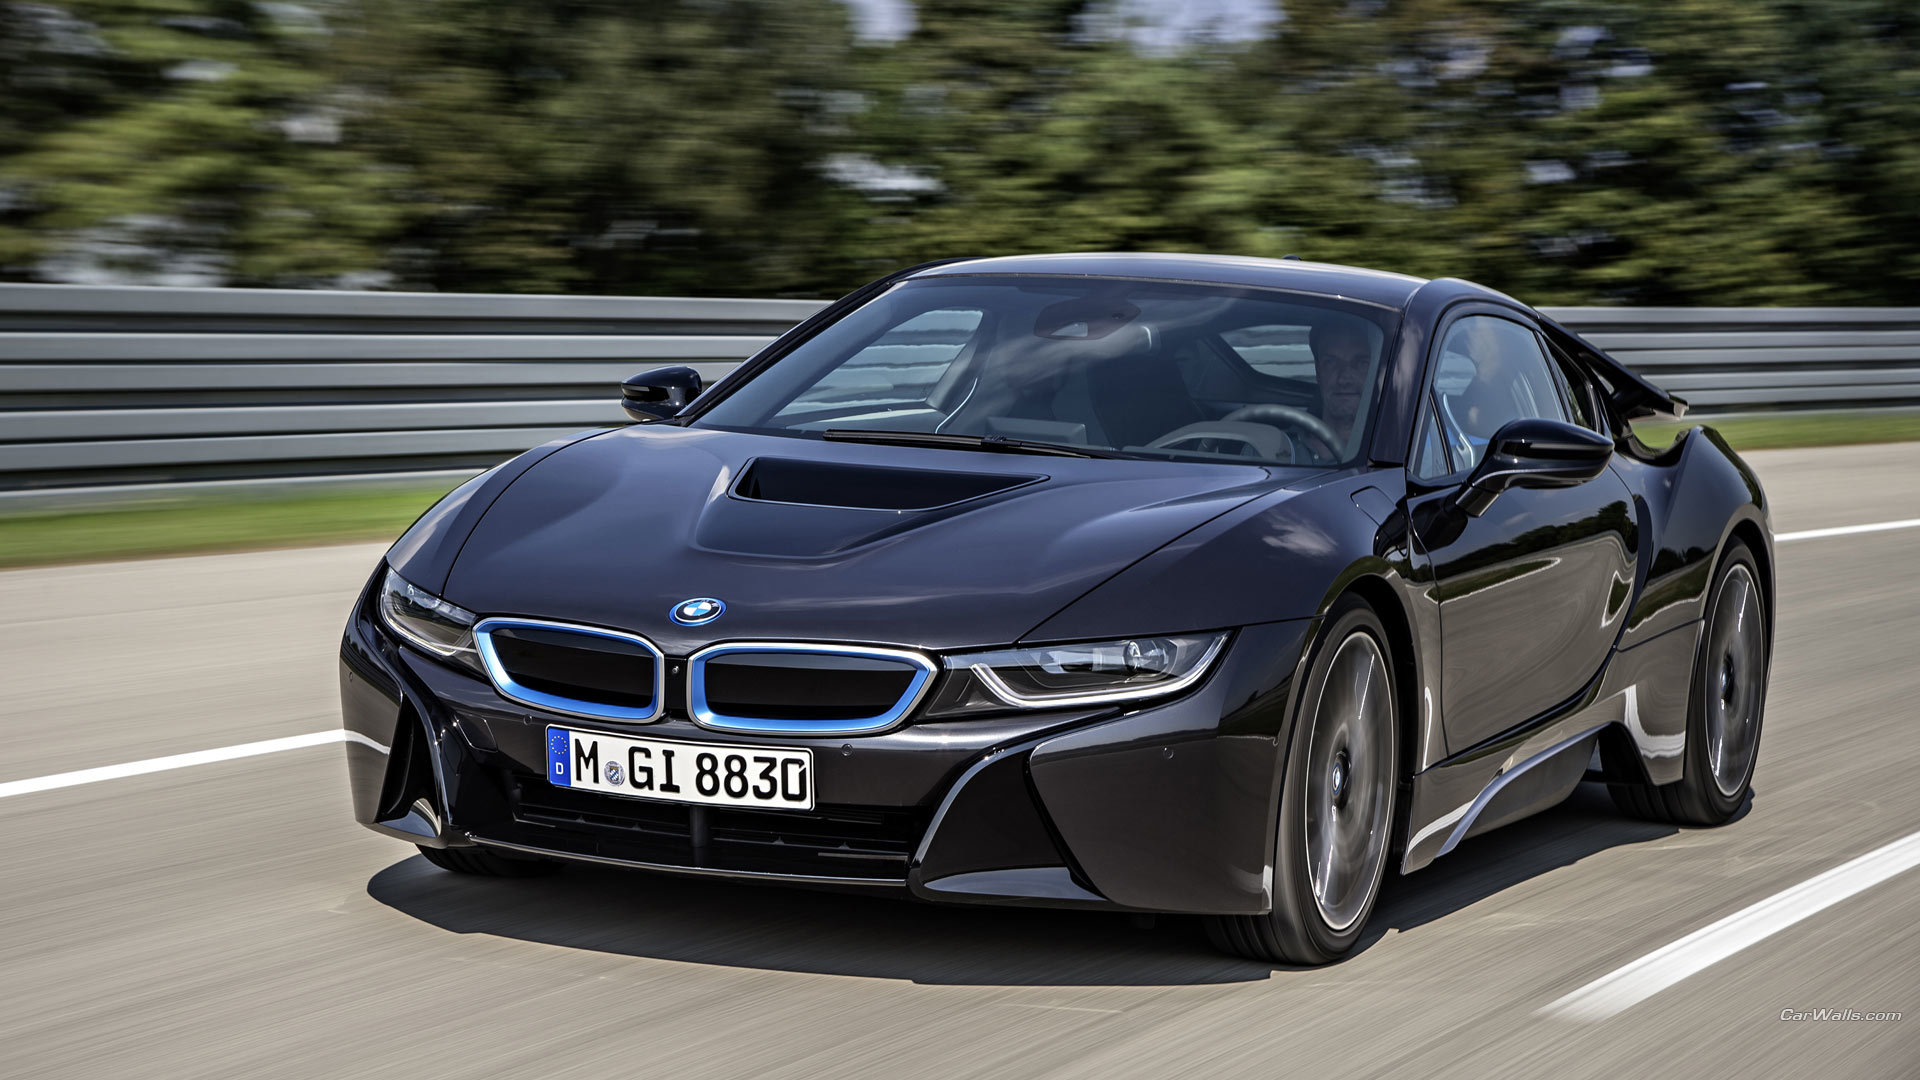 High Resolution Bmw I8 Full Hd Wallpaper Id 126934 For Computer